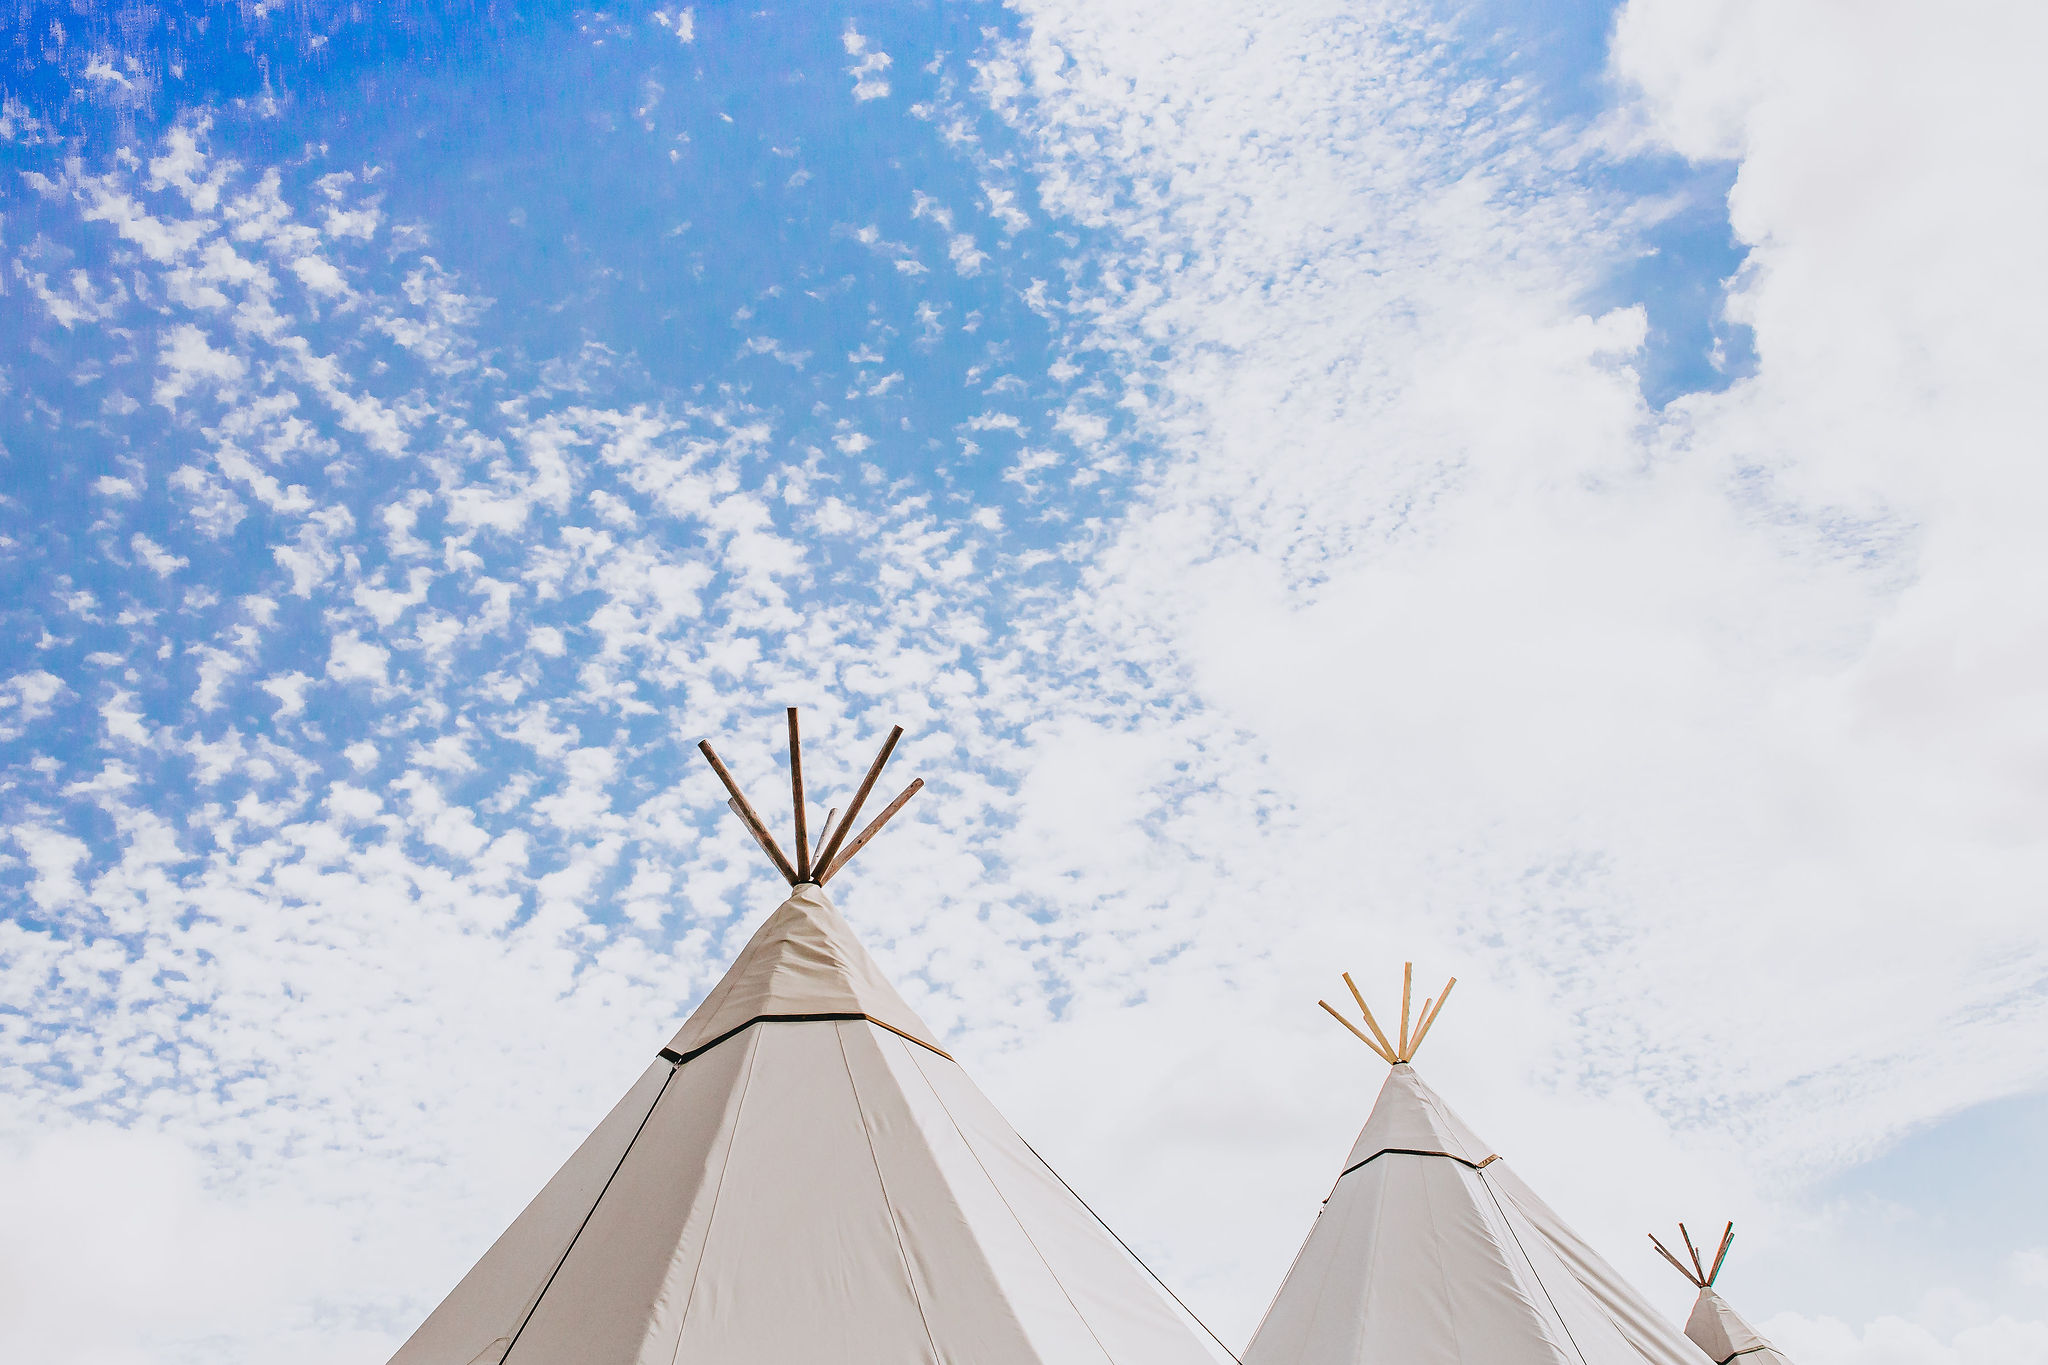 Peaks of our white canvas tipis